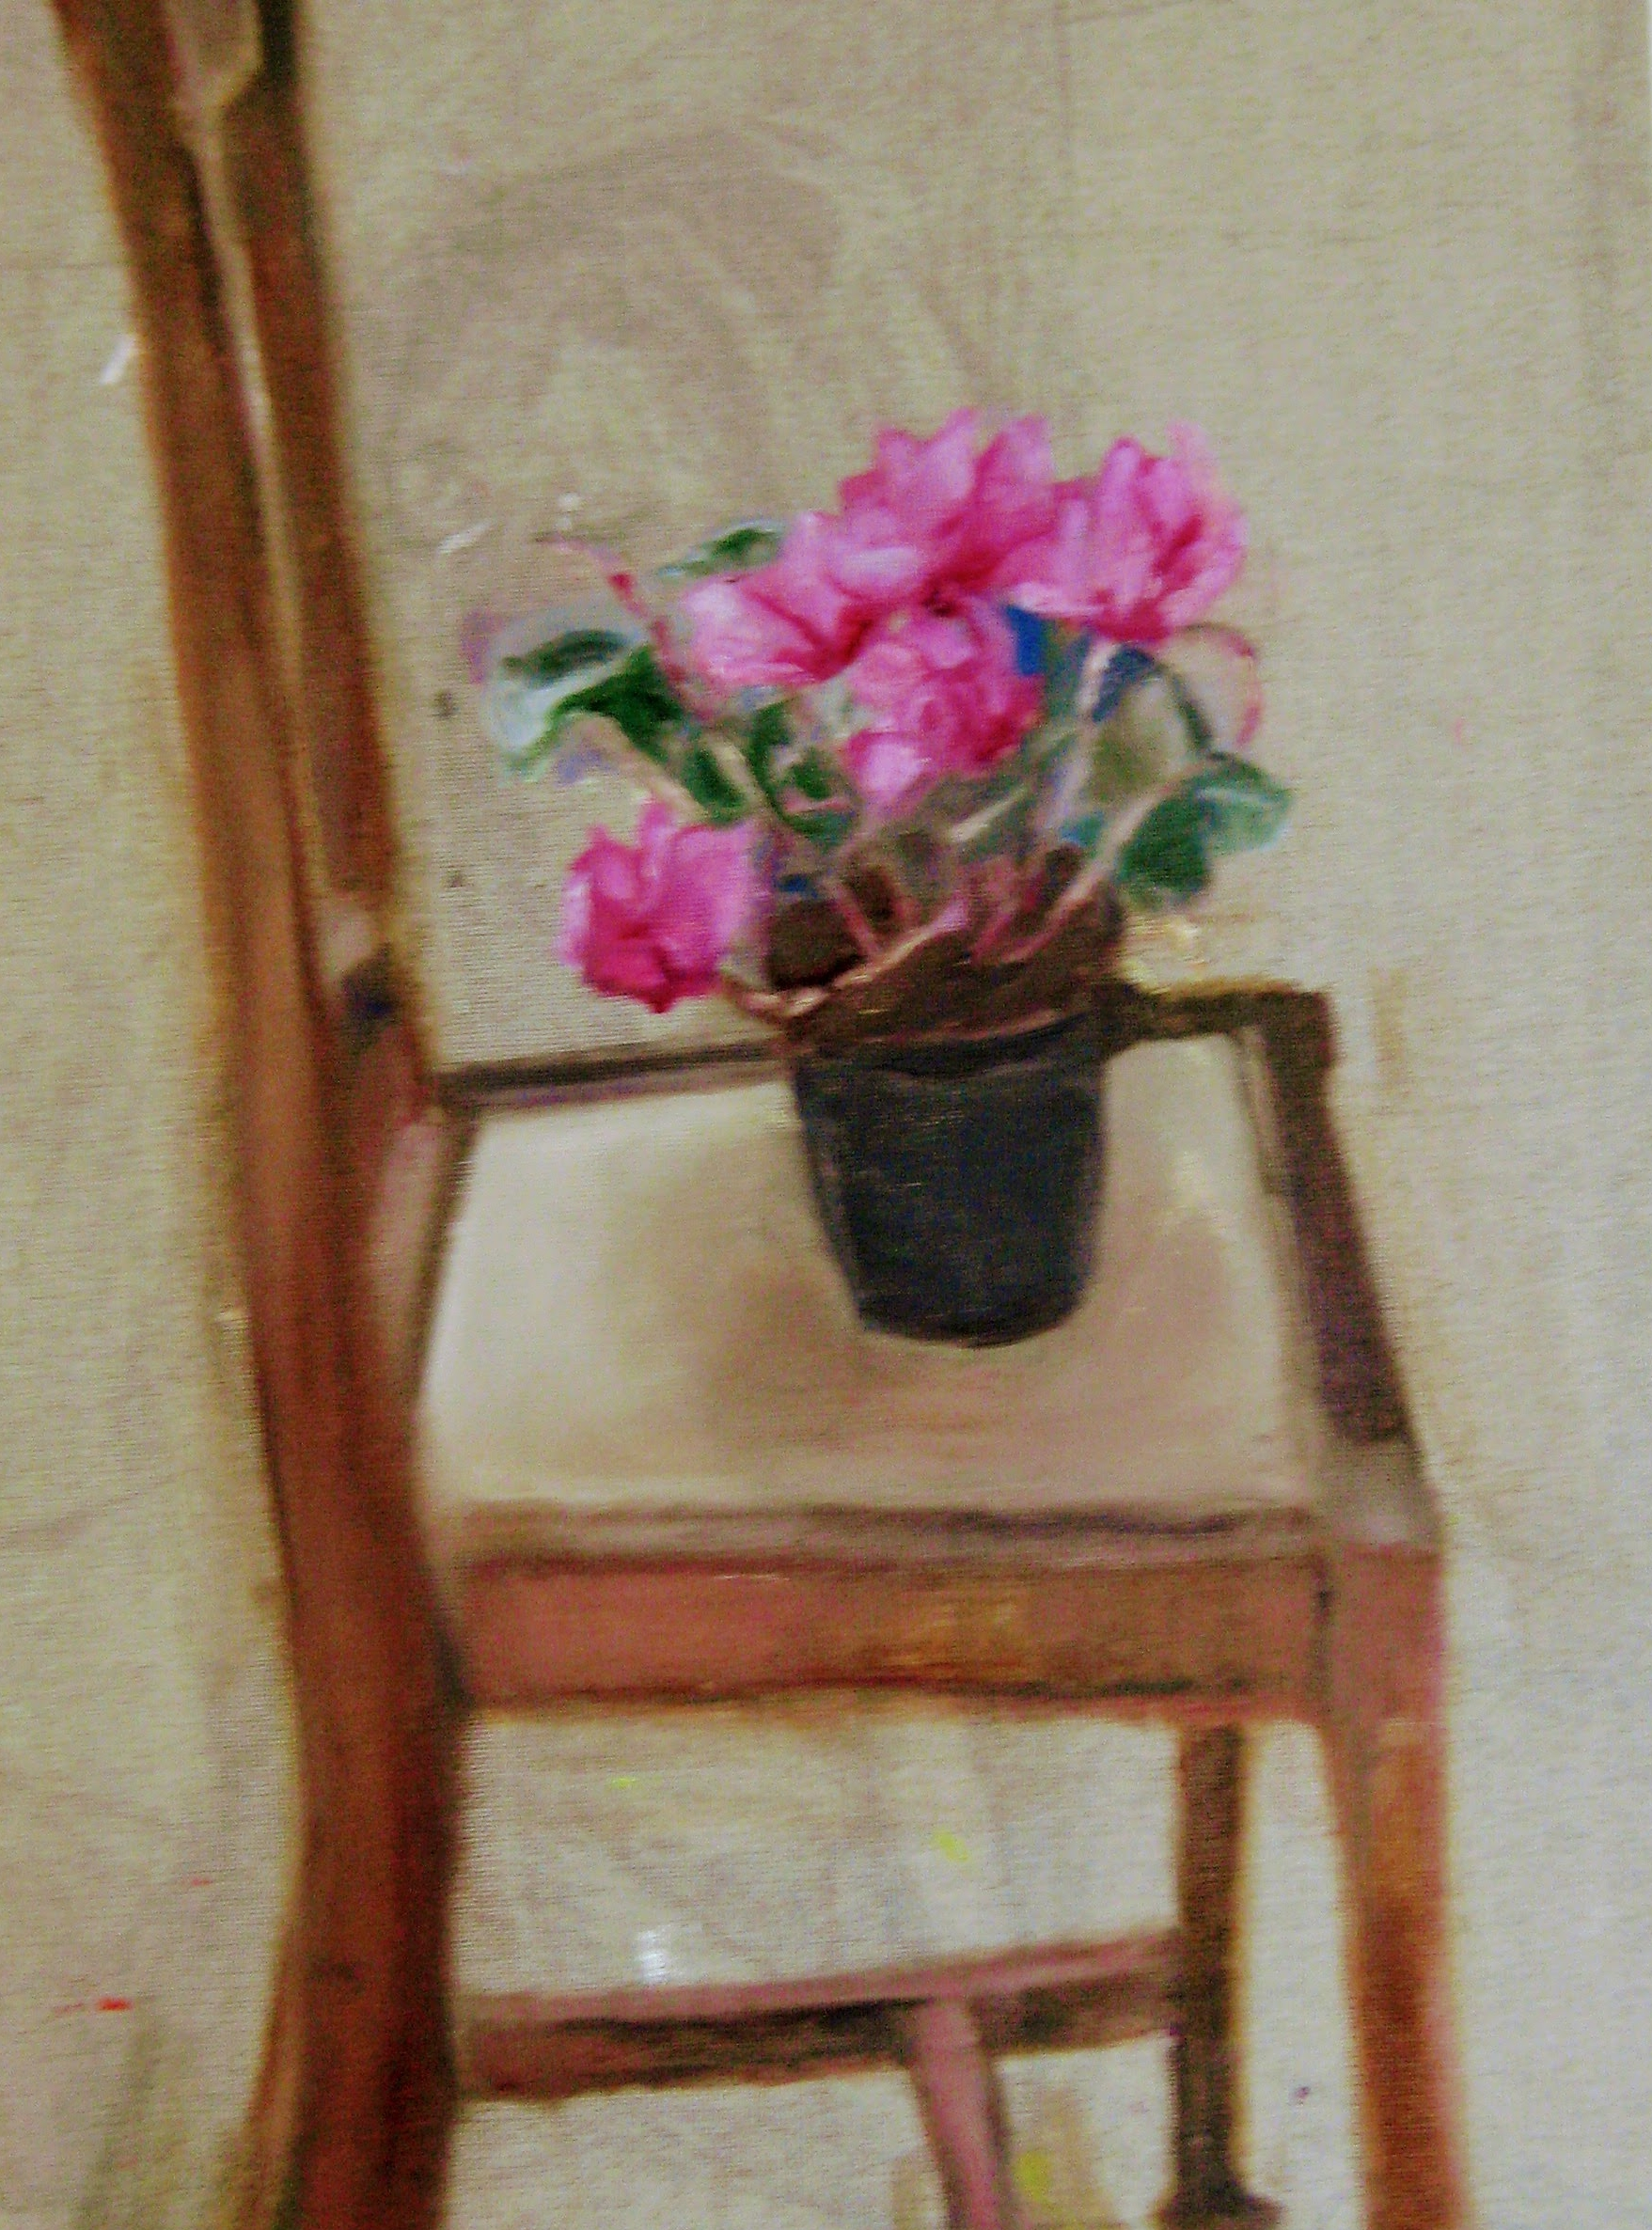 Cyclamen on Chair   Acrylics on canvas  by Sally Hyman